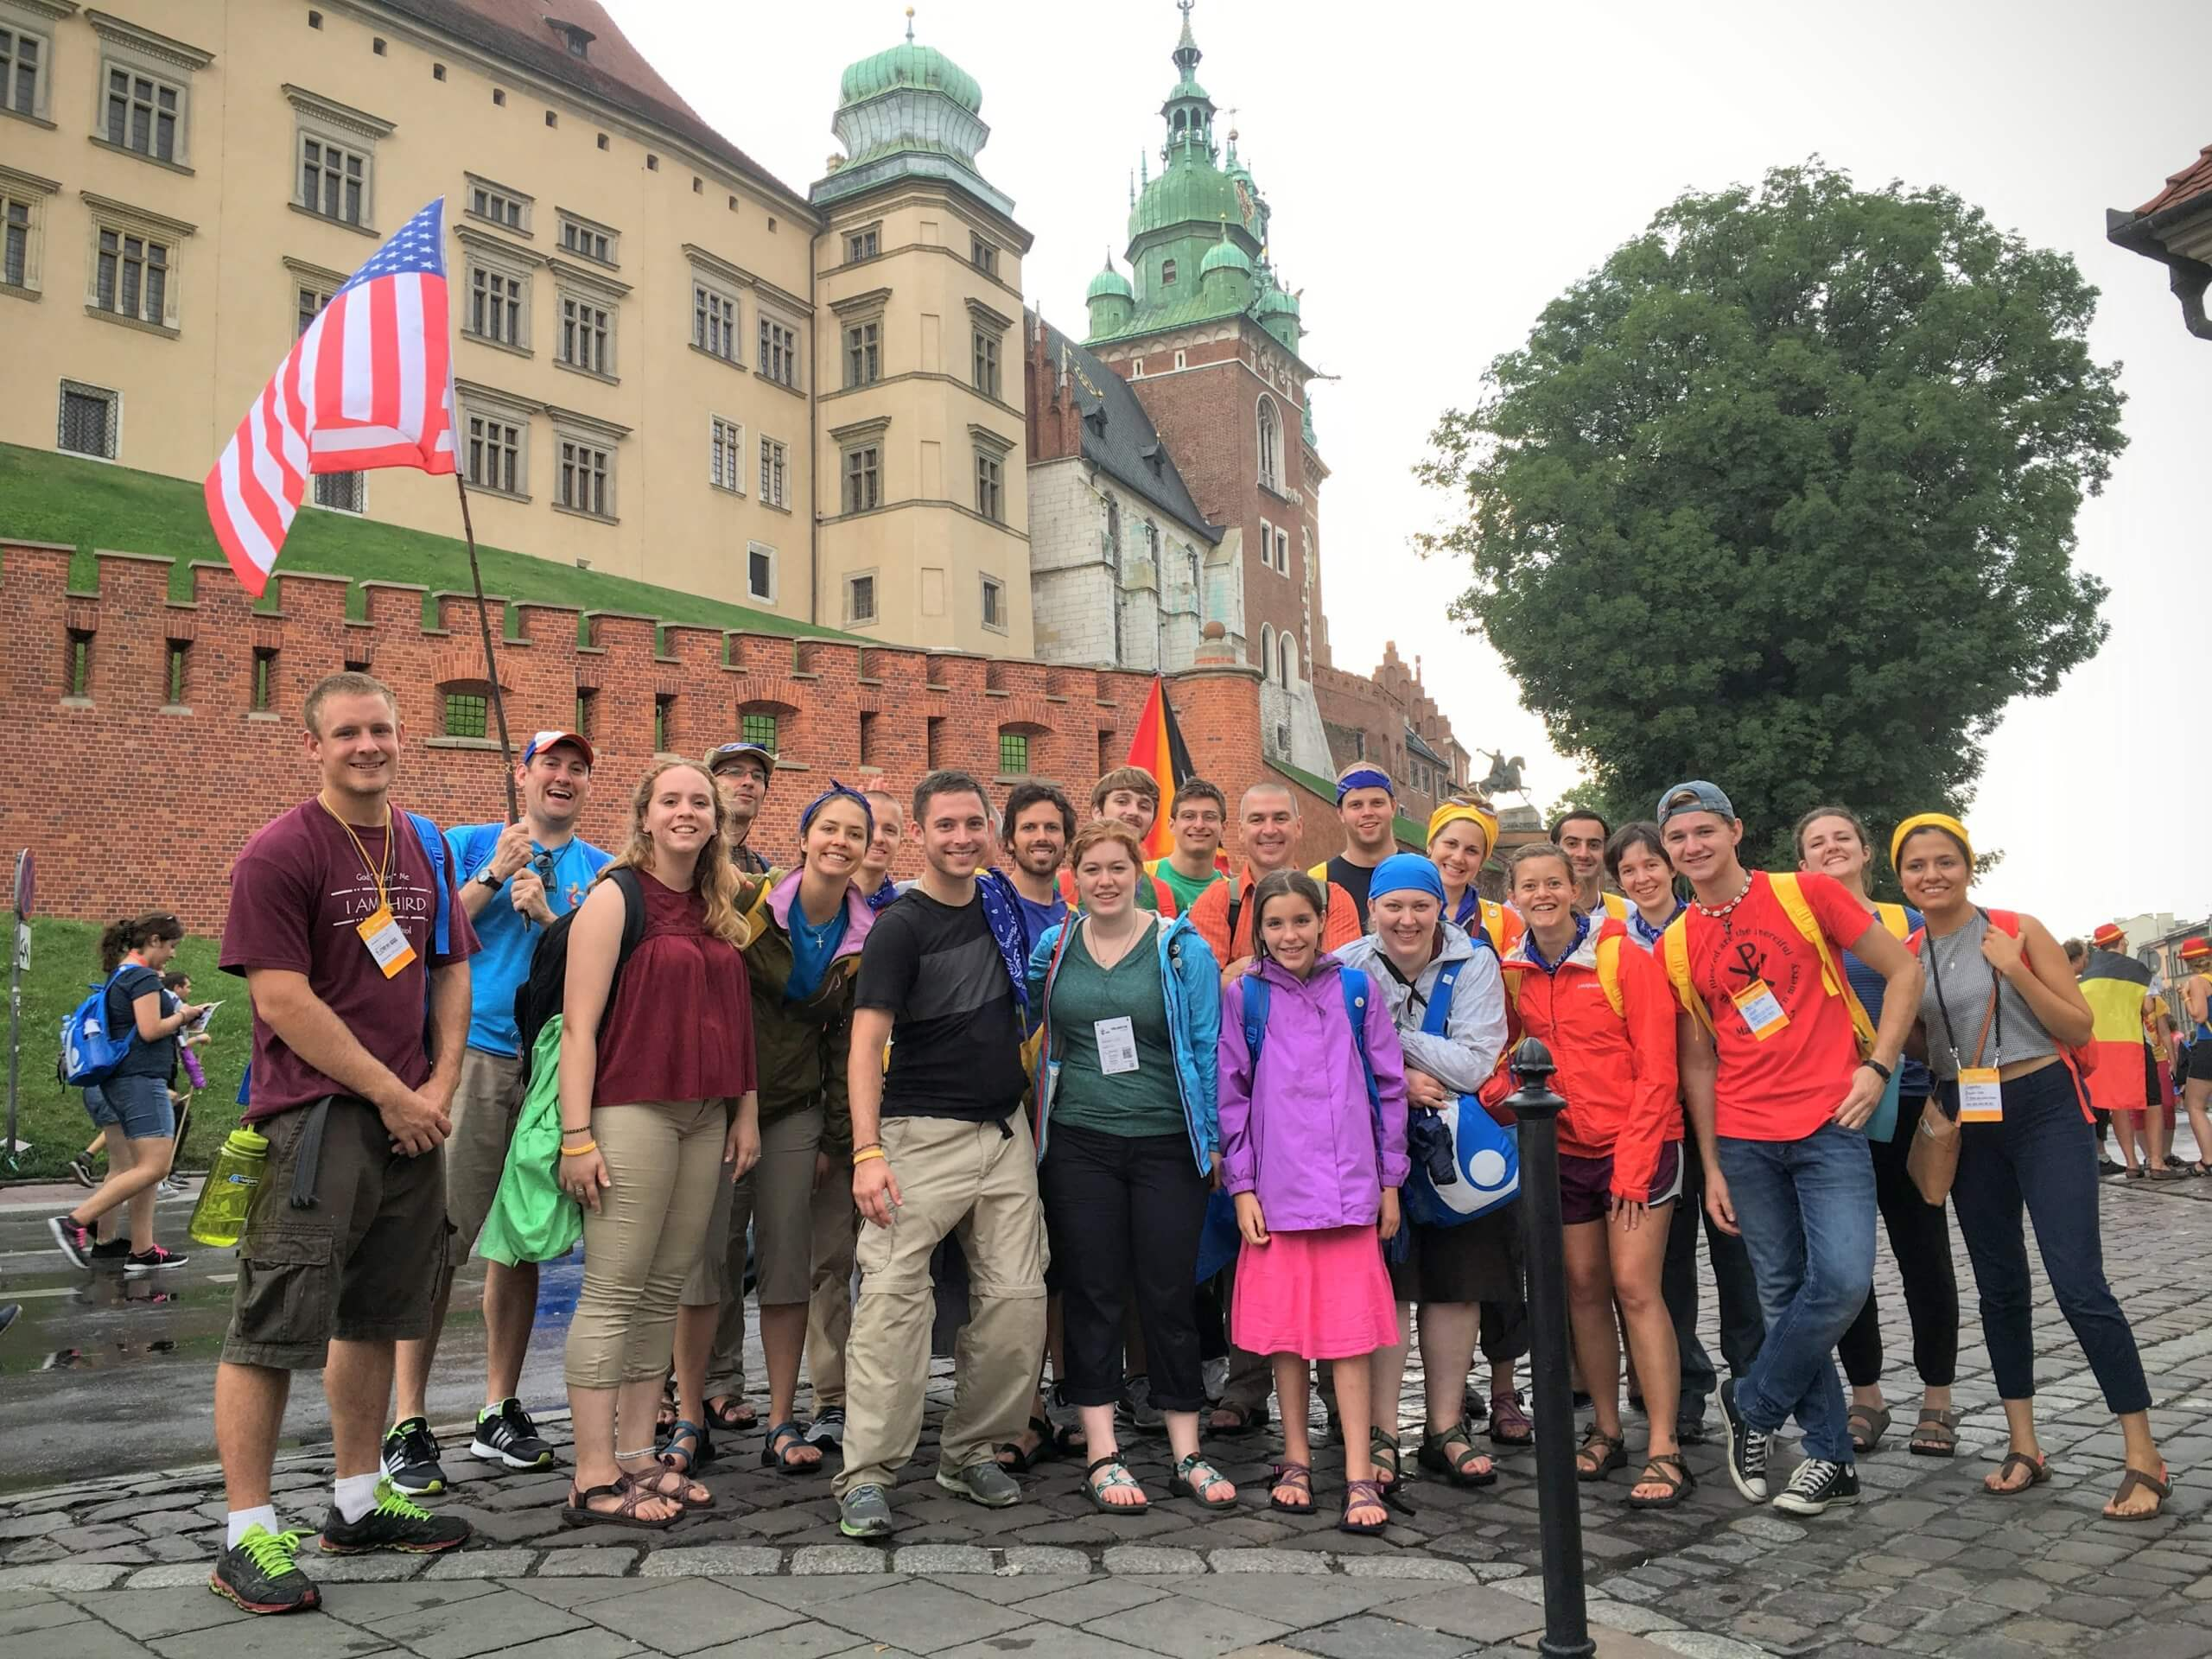 Diocesan contingent at World Youth Day Poland, summer 2016